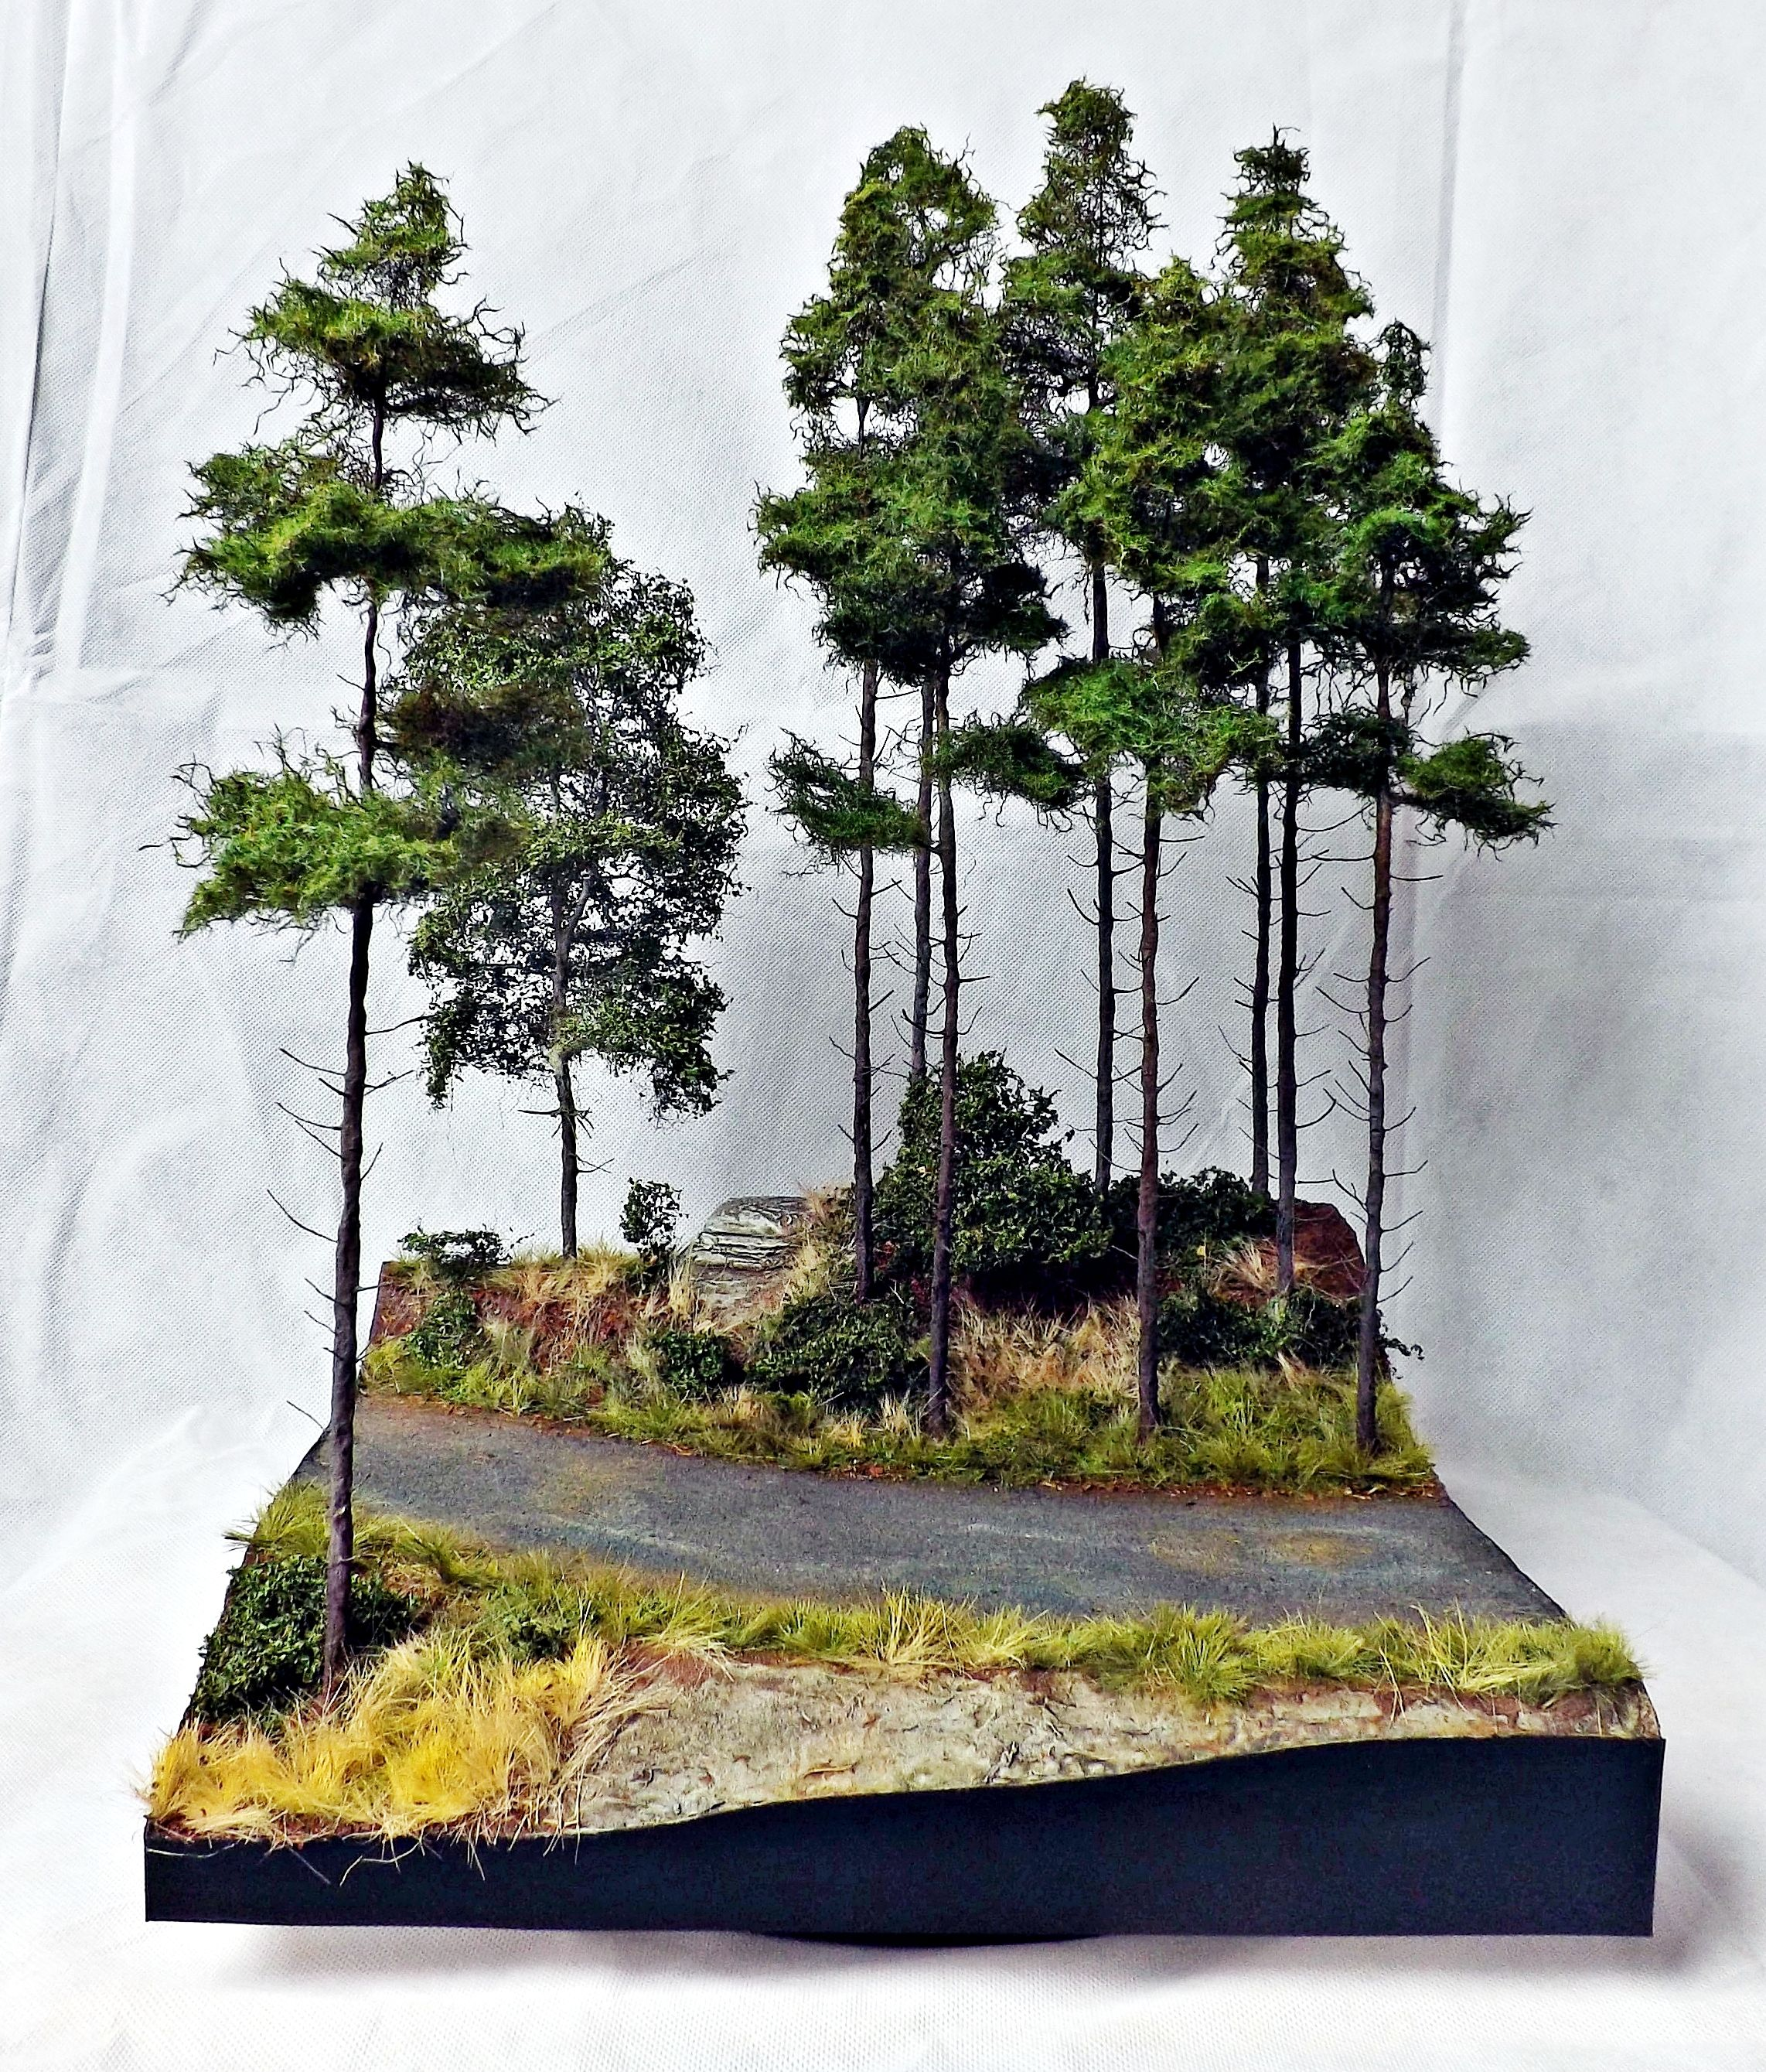 Mountain Road 1 35 Scale Diorama Base By Terence Young Beautiful Landscapes Model Terrain Nature Projects